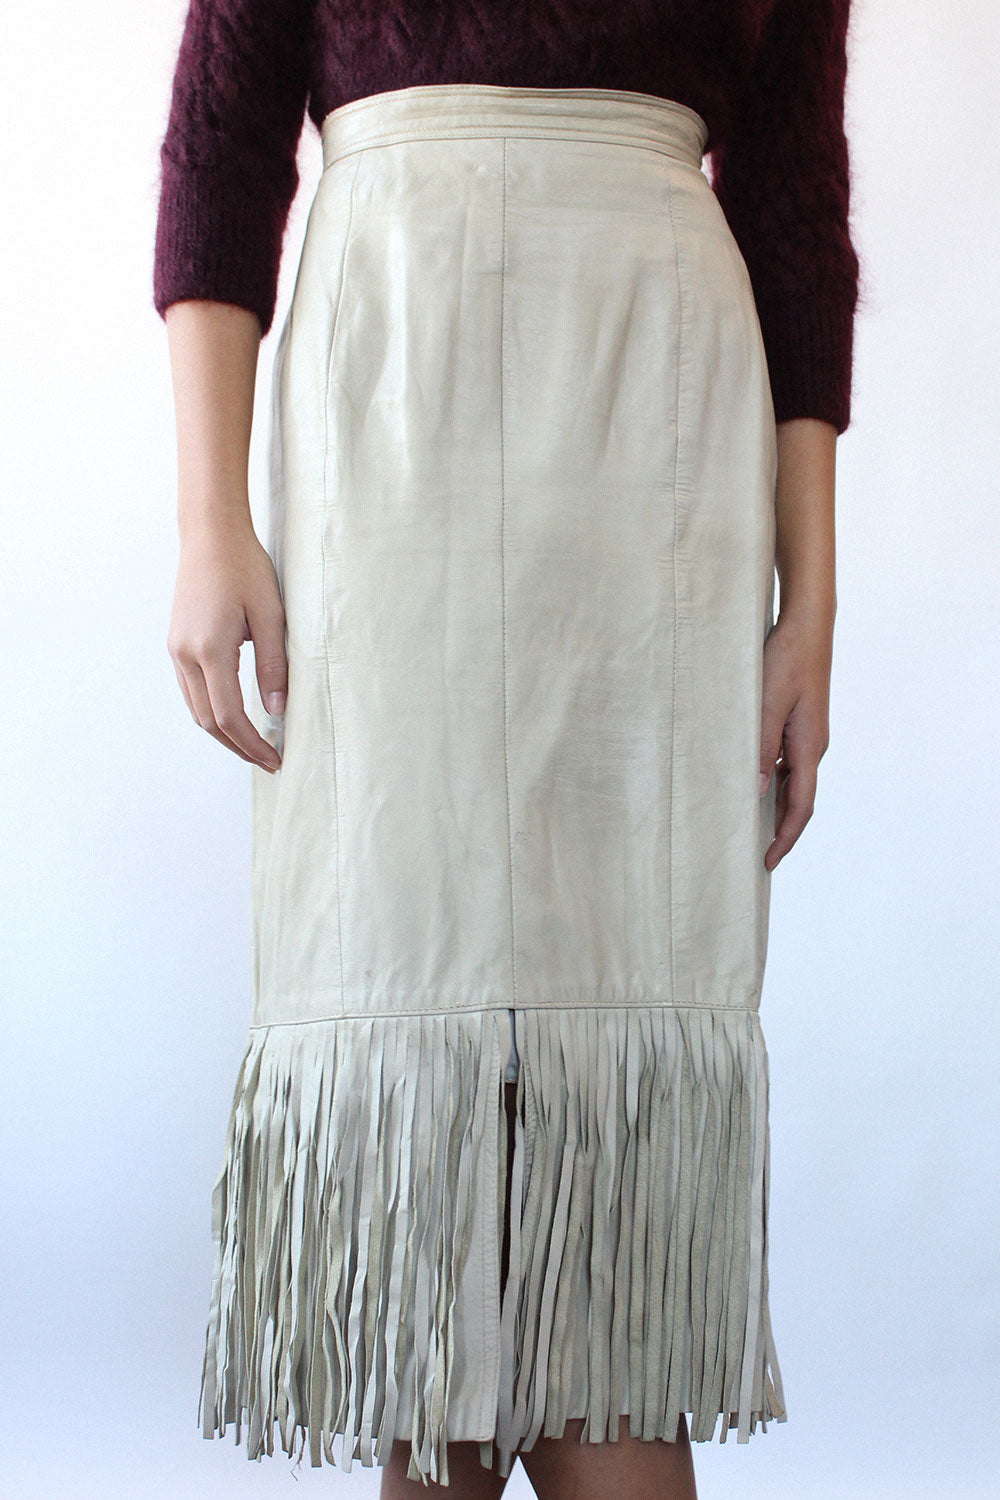 Beige Leather Fringe Skirt M/L